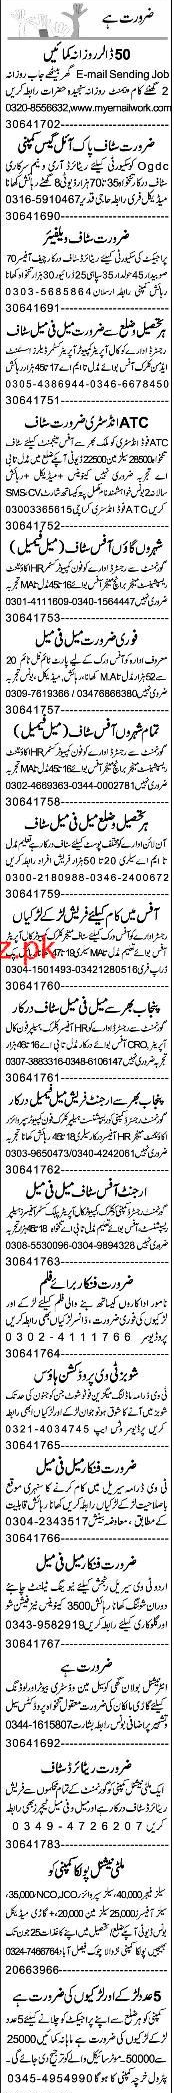 Telephone Operators, LTV Drivers, Receptionists Wanted